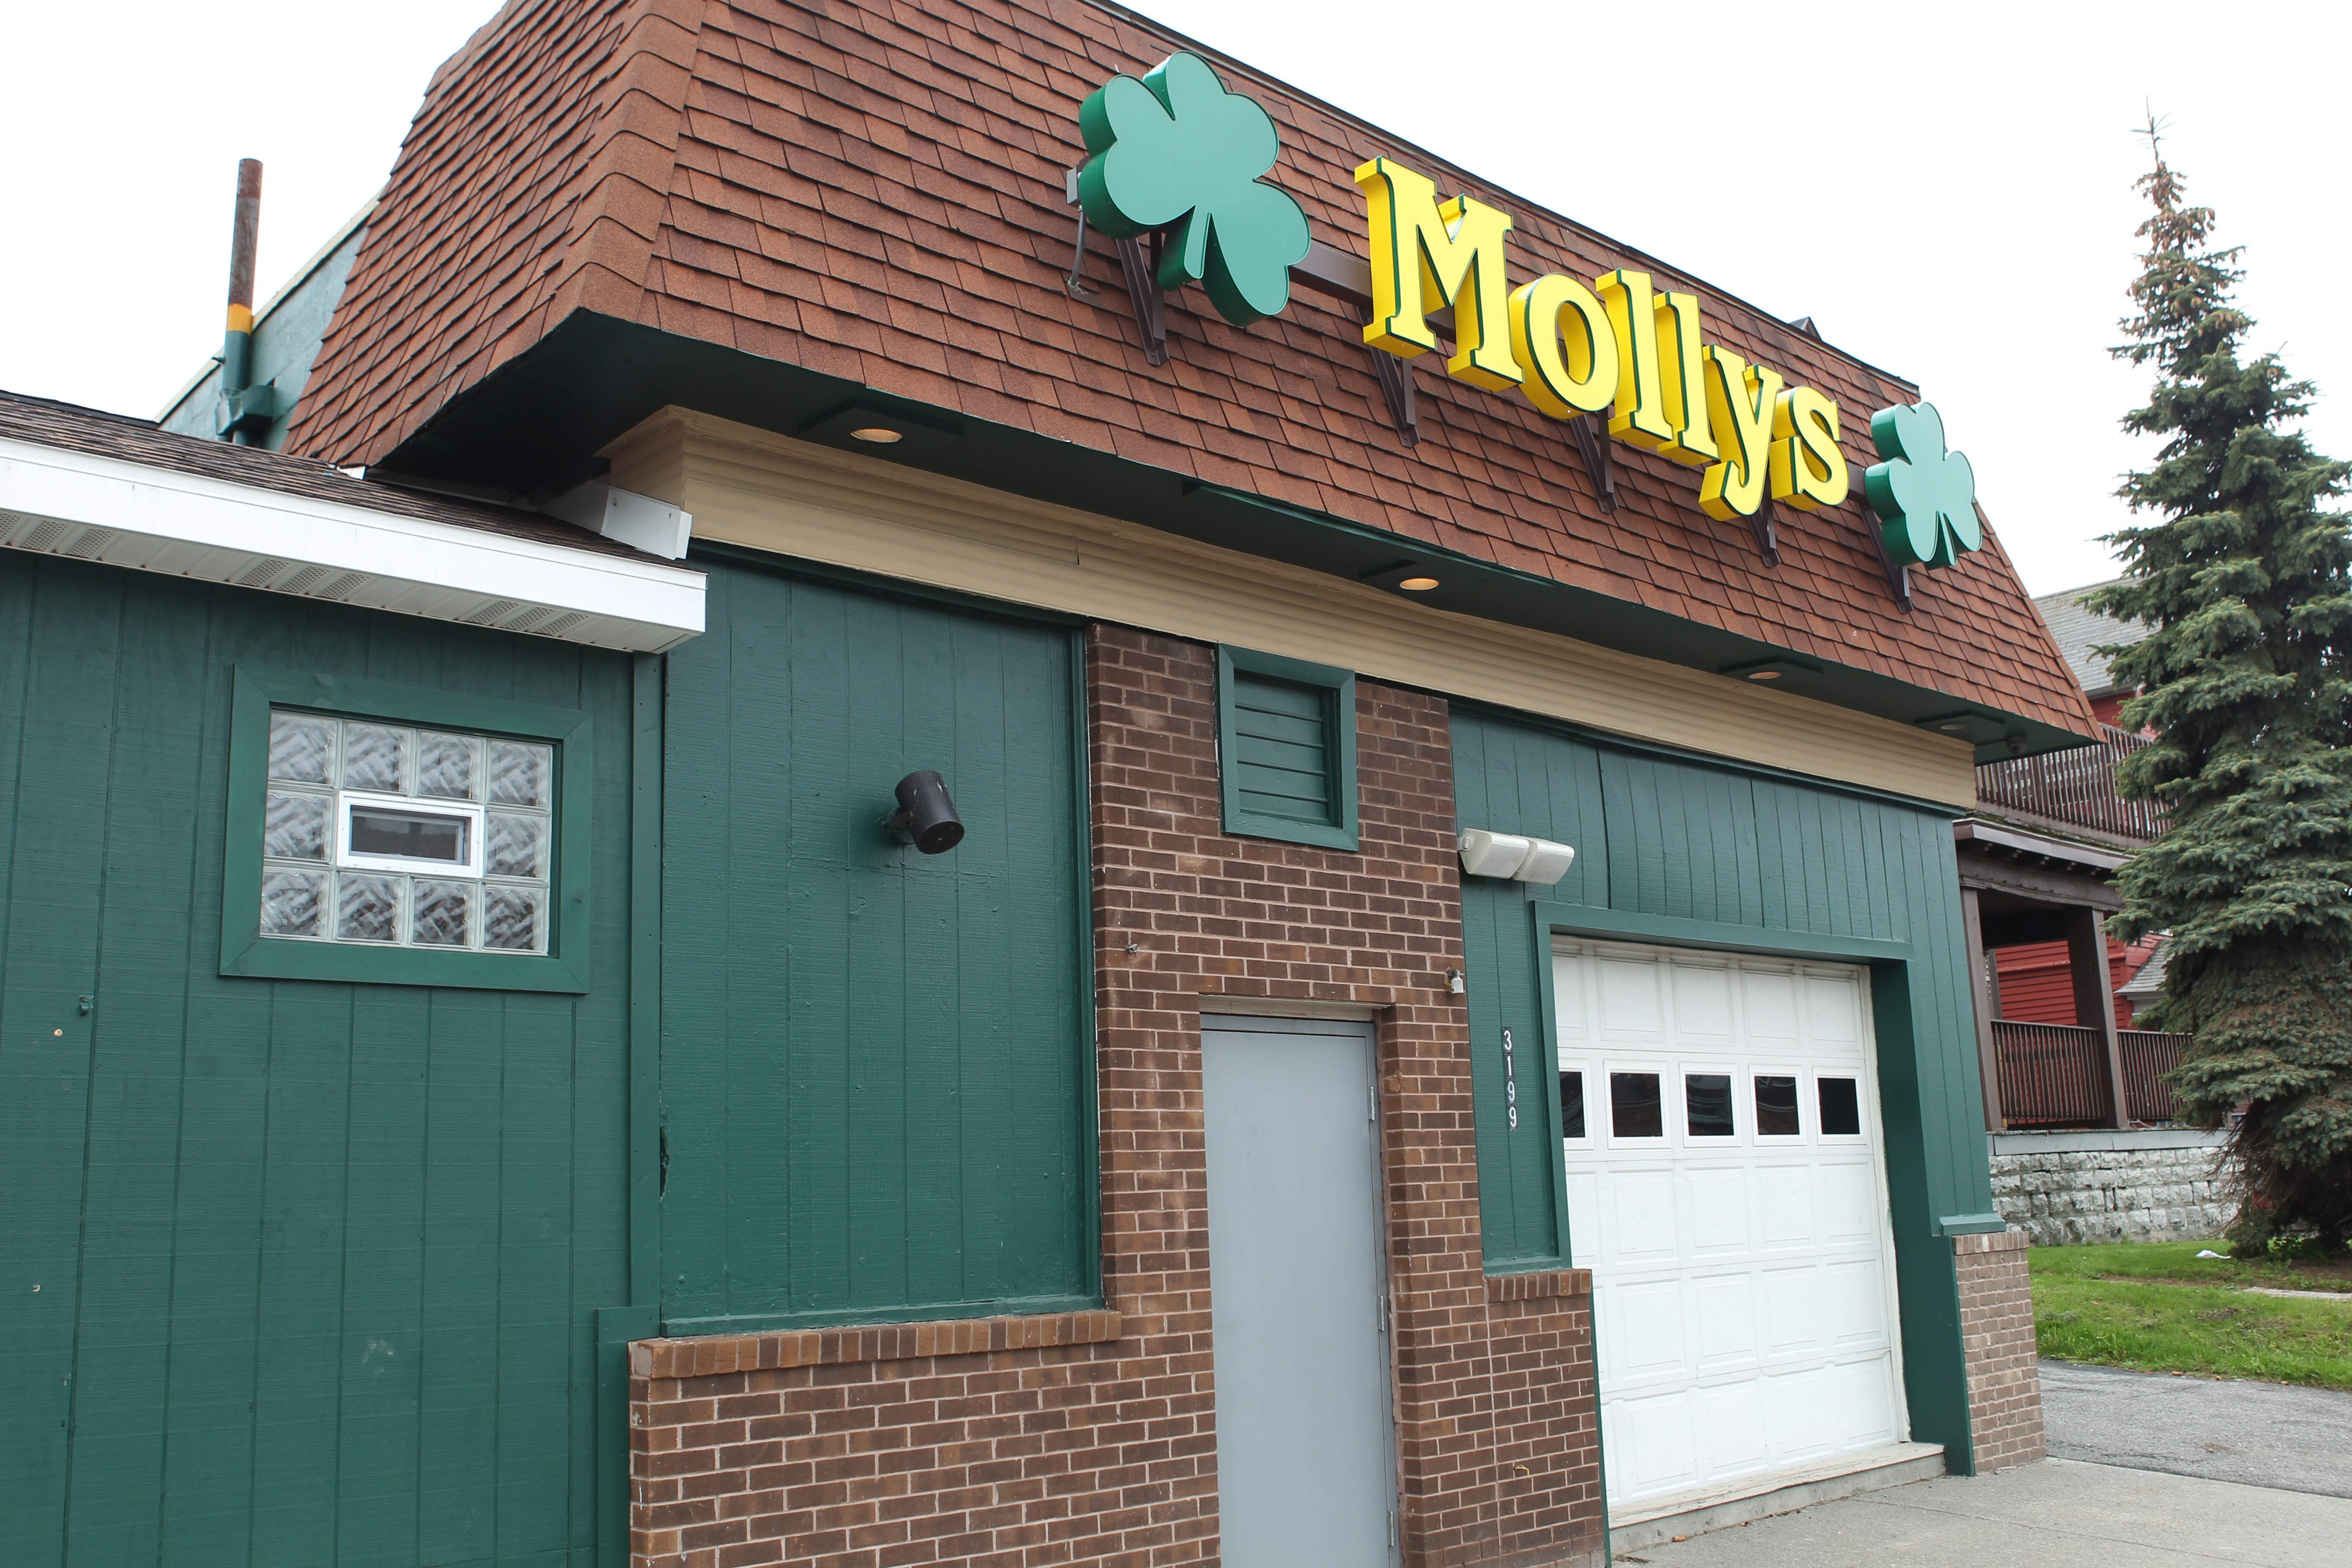 Others have reported rough treatment at the hands of Robert E. Eloff, a Buffalo police officer suspended for his off-duty conduct in a May 11 incident at Molly's Pub, above, in which a bar patron was critically injured.